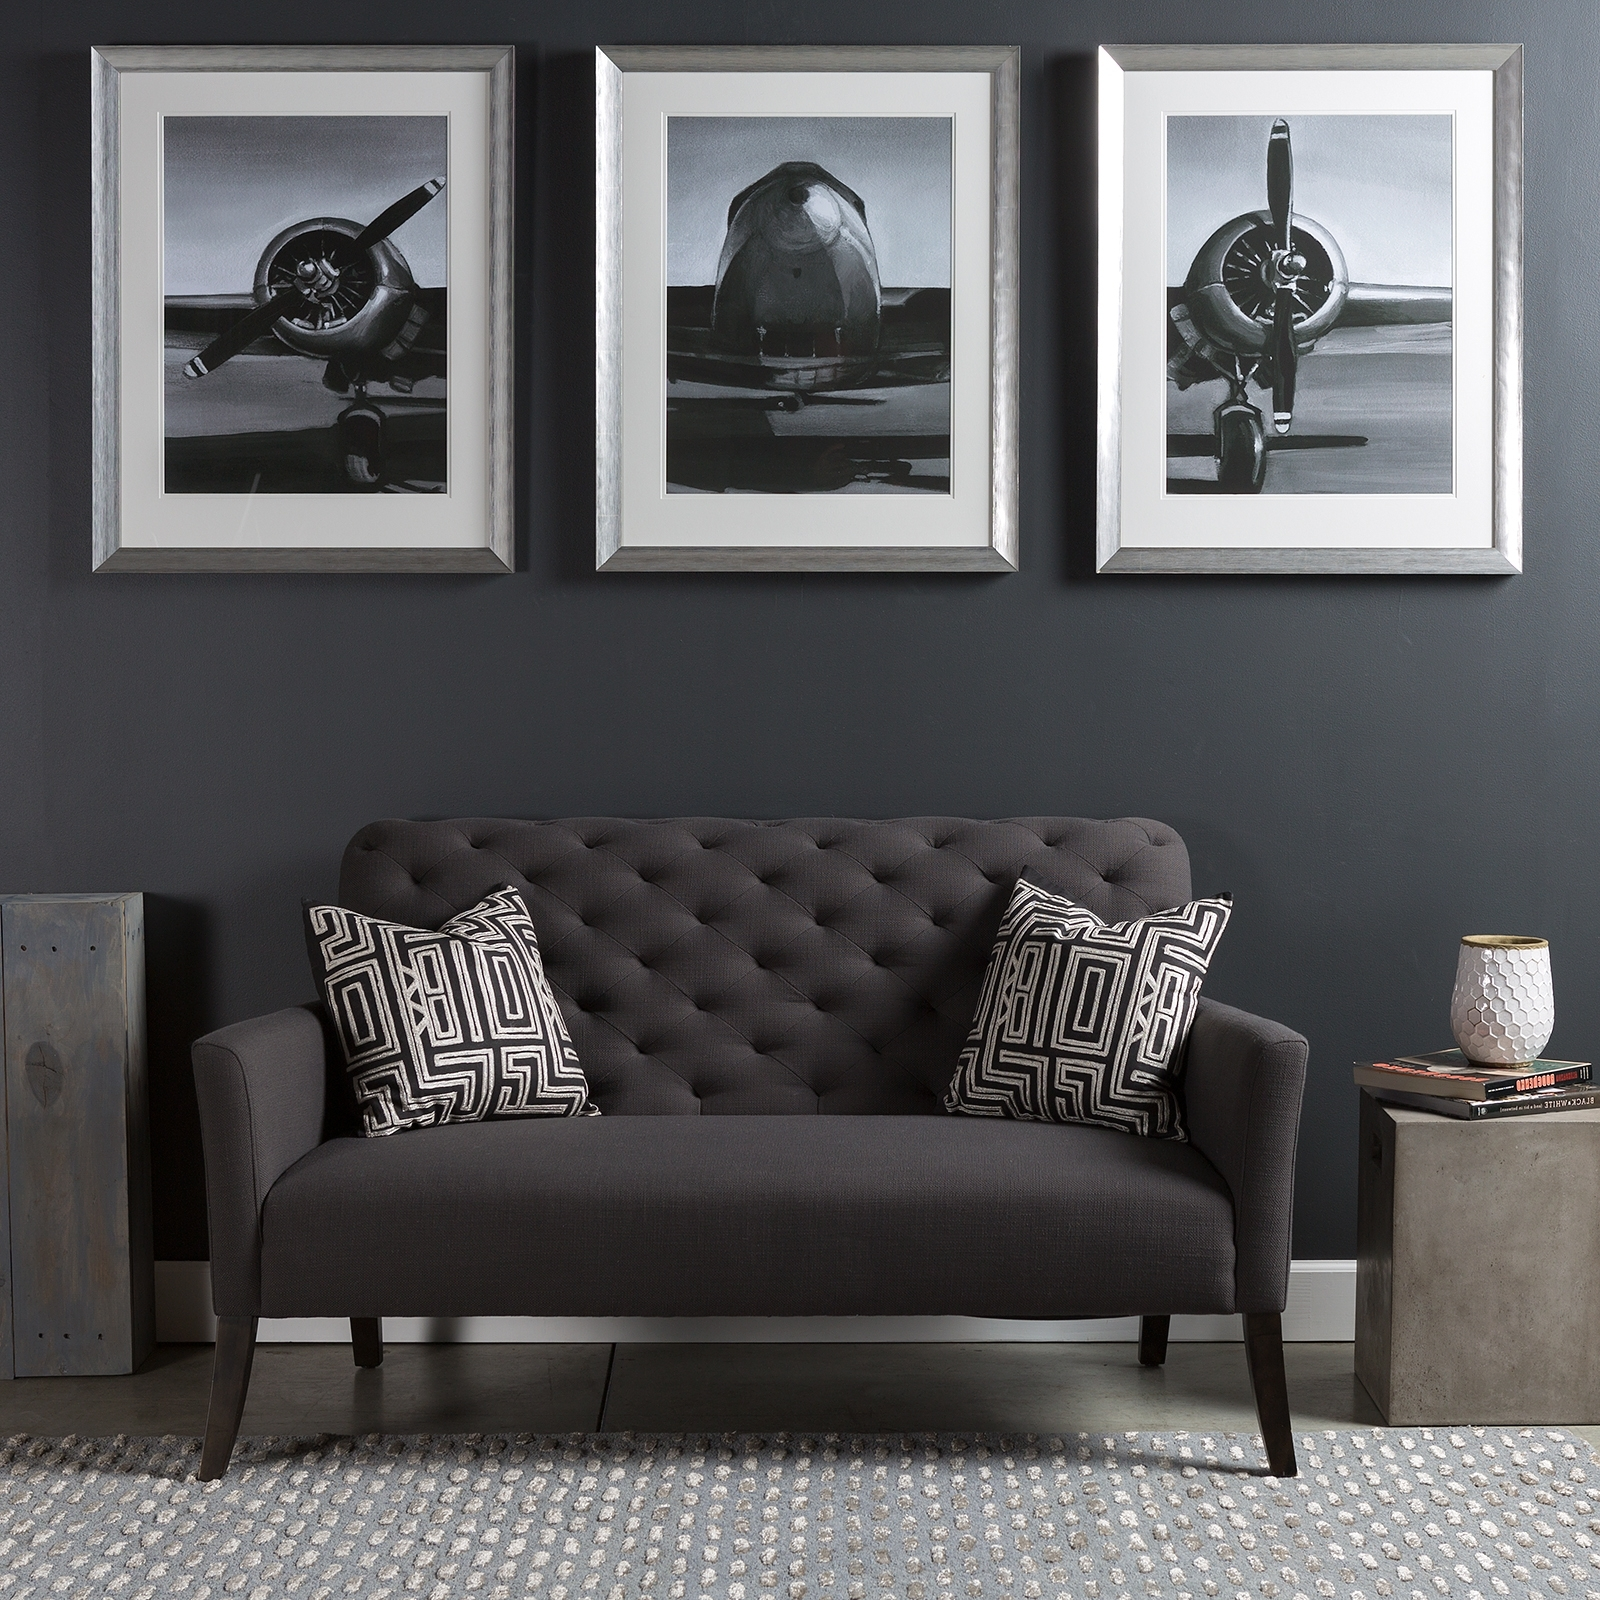 Triptych Wall Art Piece With A Modern Industrial Flare; A Series Pertaining To Well Liked Unique Modern Wall Art (View 11 of 15)